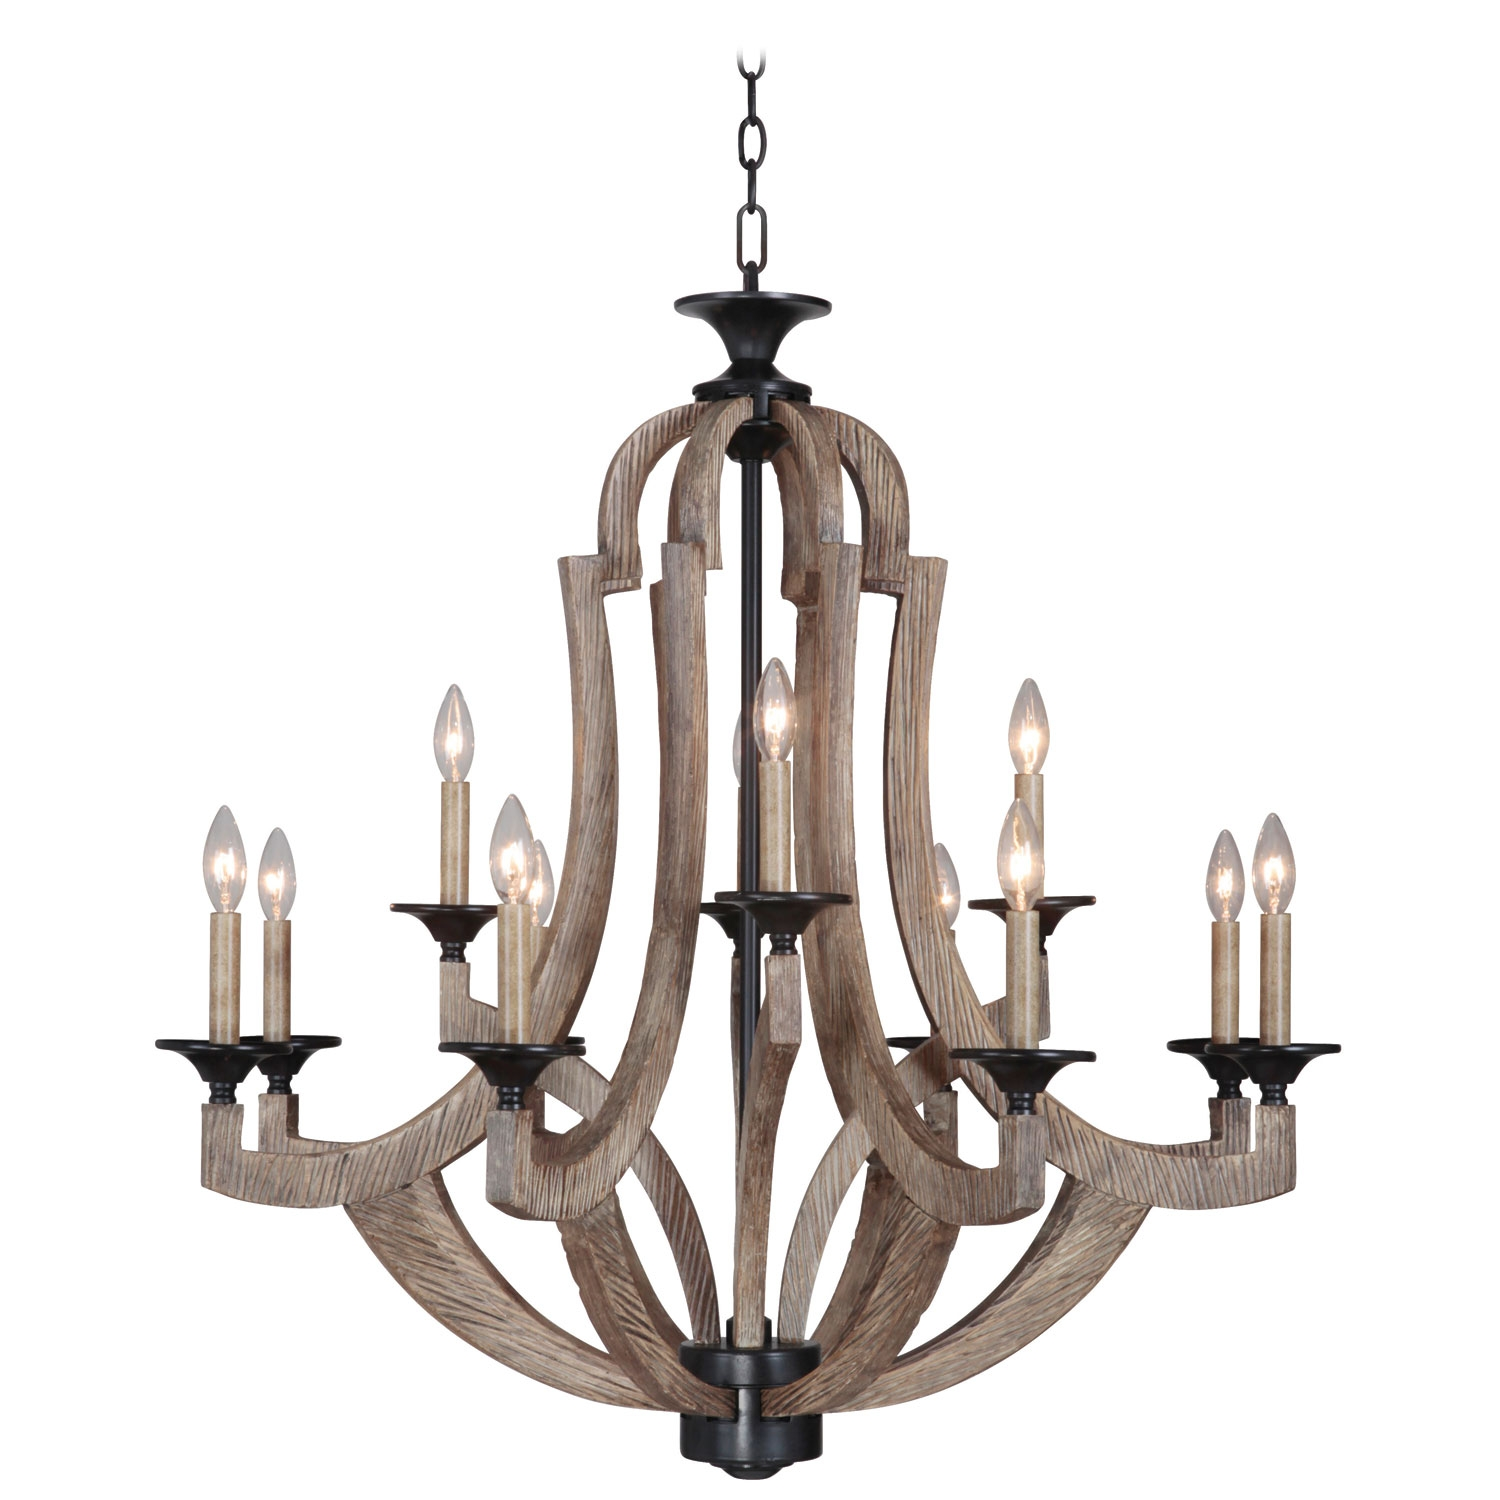 Chandeliers Crystal Modern Iron Shab Chic Country French Pertaining To Small Bronze Chandelier (Image 5 of 15)